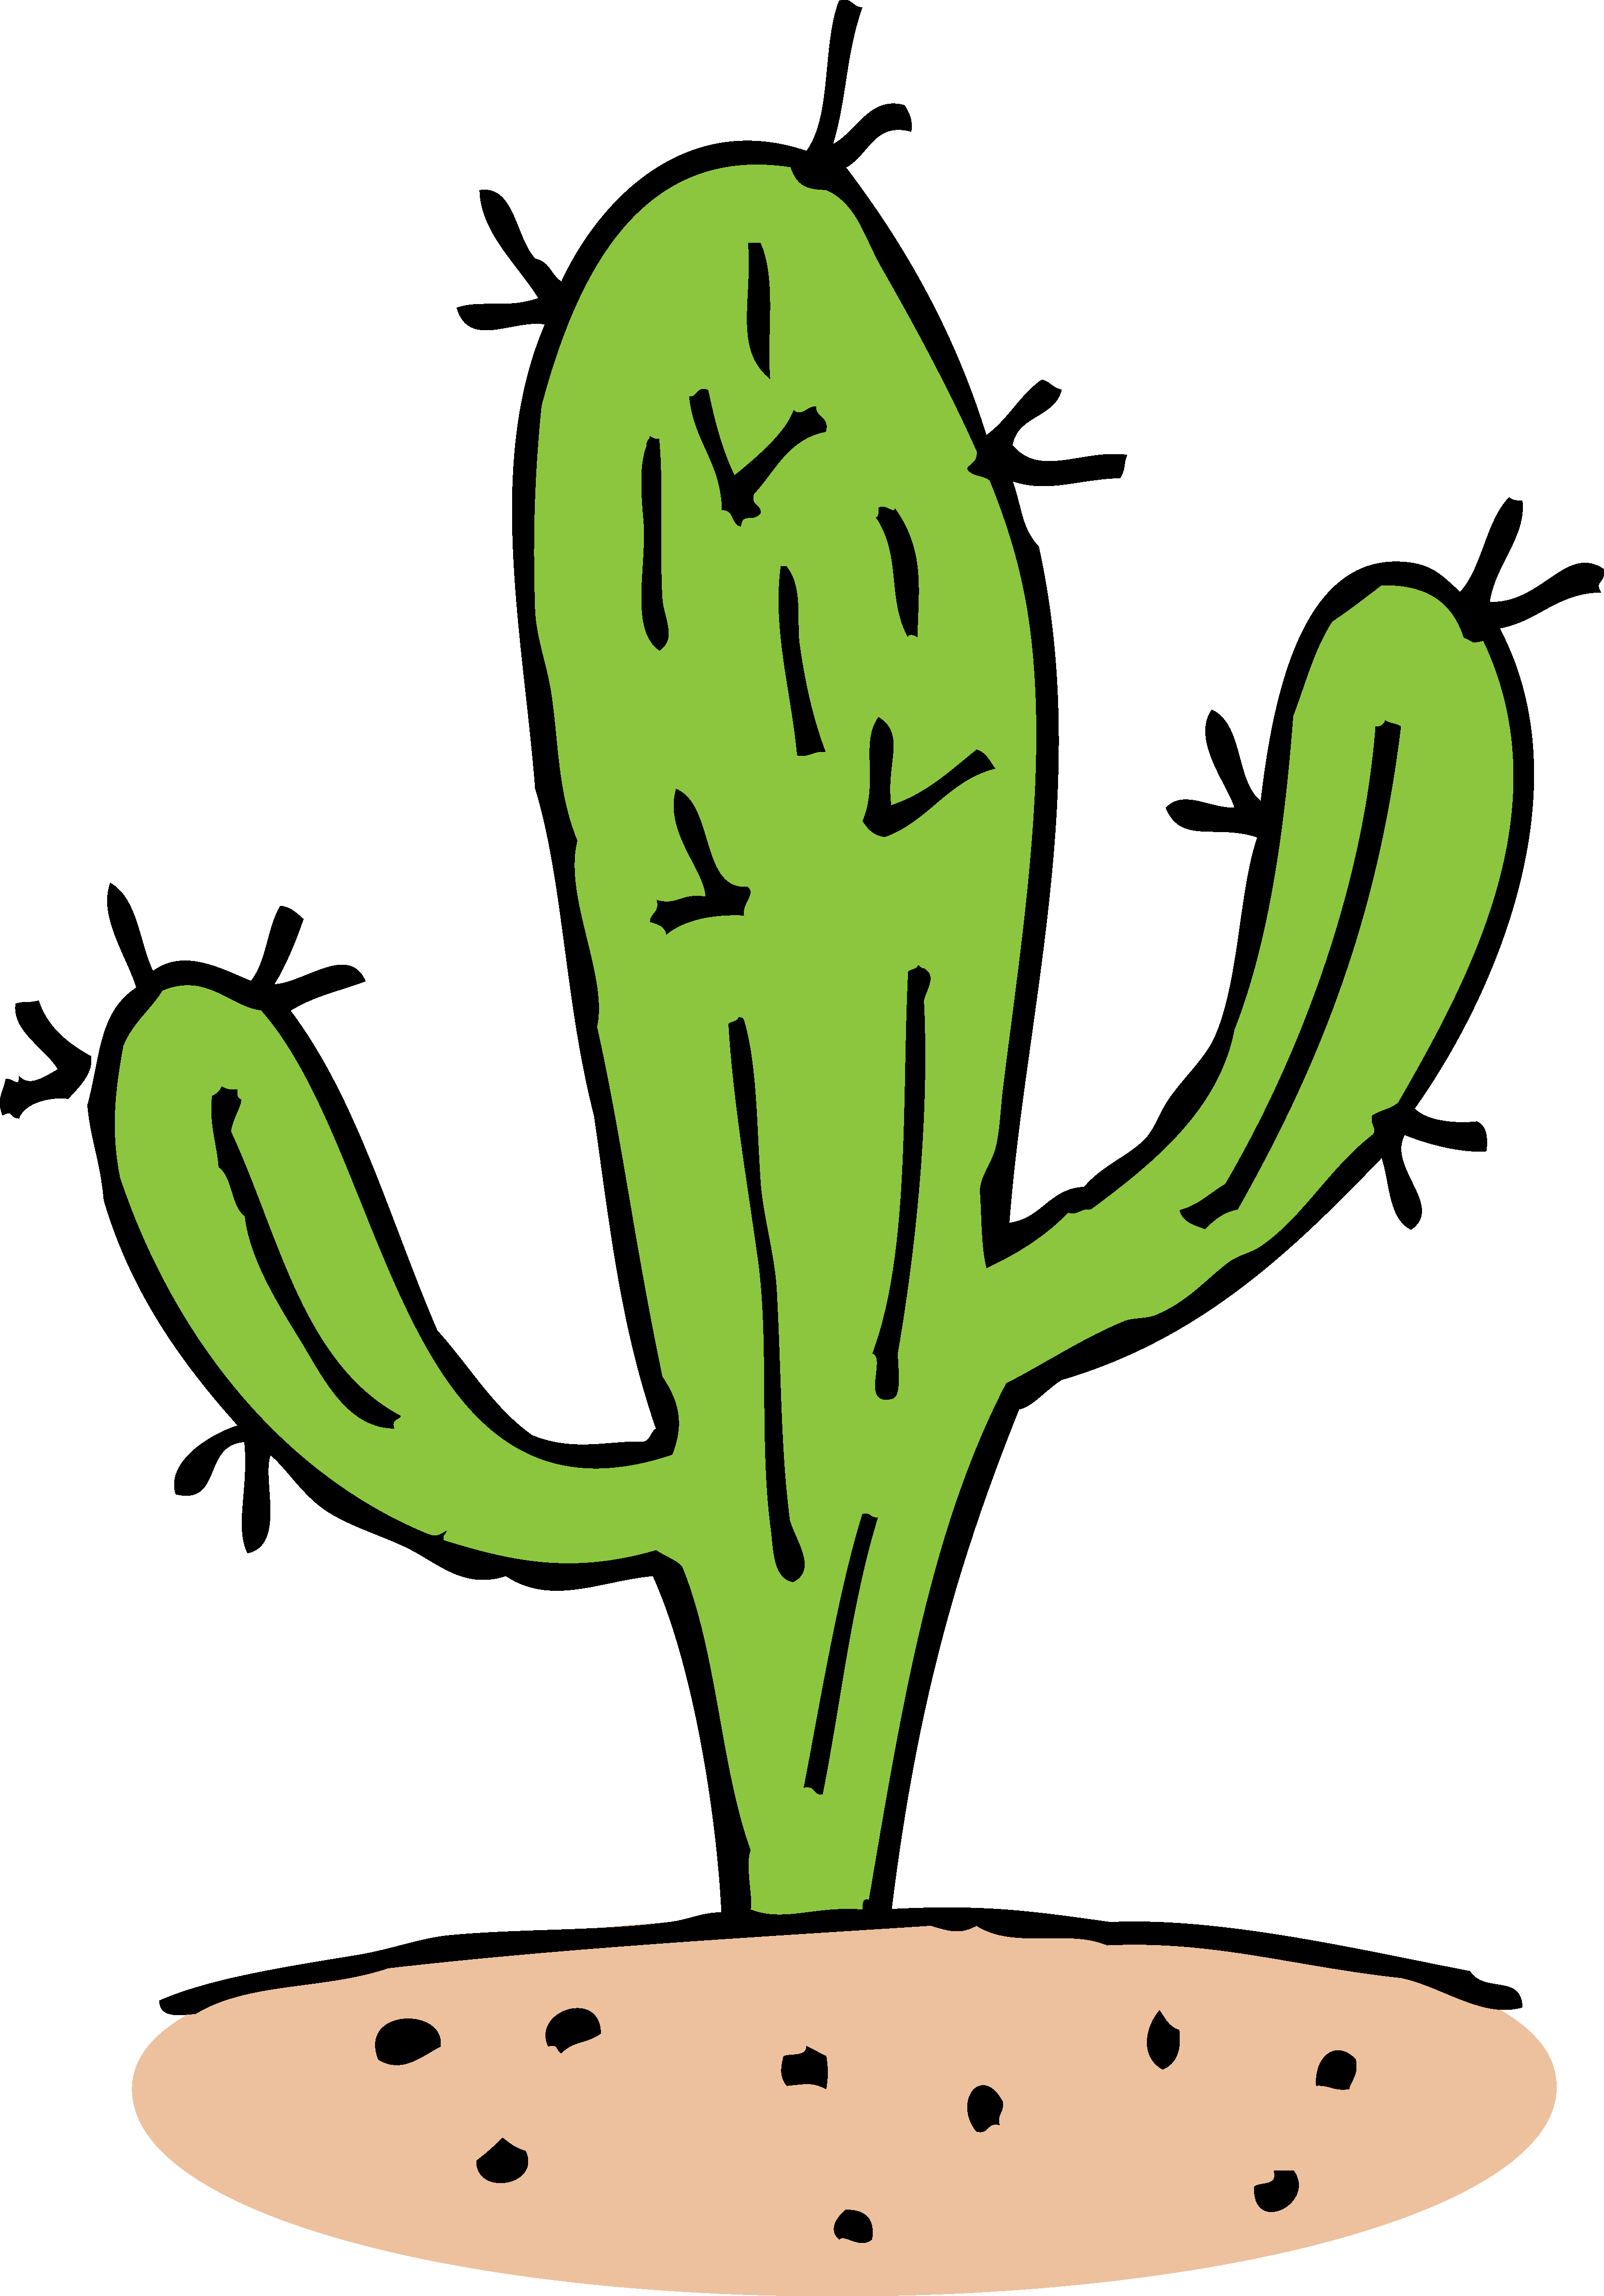 Clipart of a cactua jpg library download Free cactus clipart public domain plant clip art image and 2 3 ... jpg library download